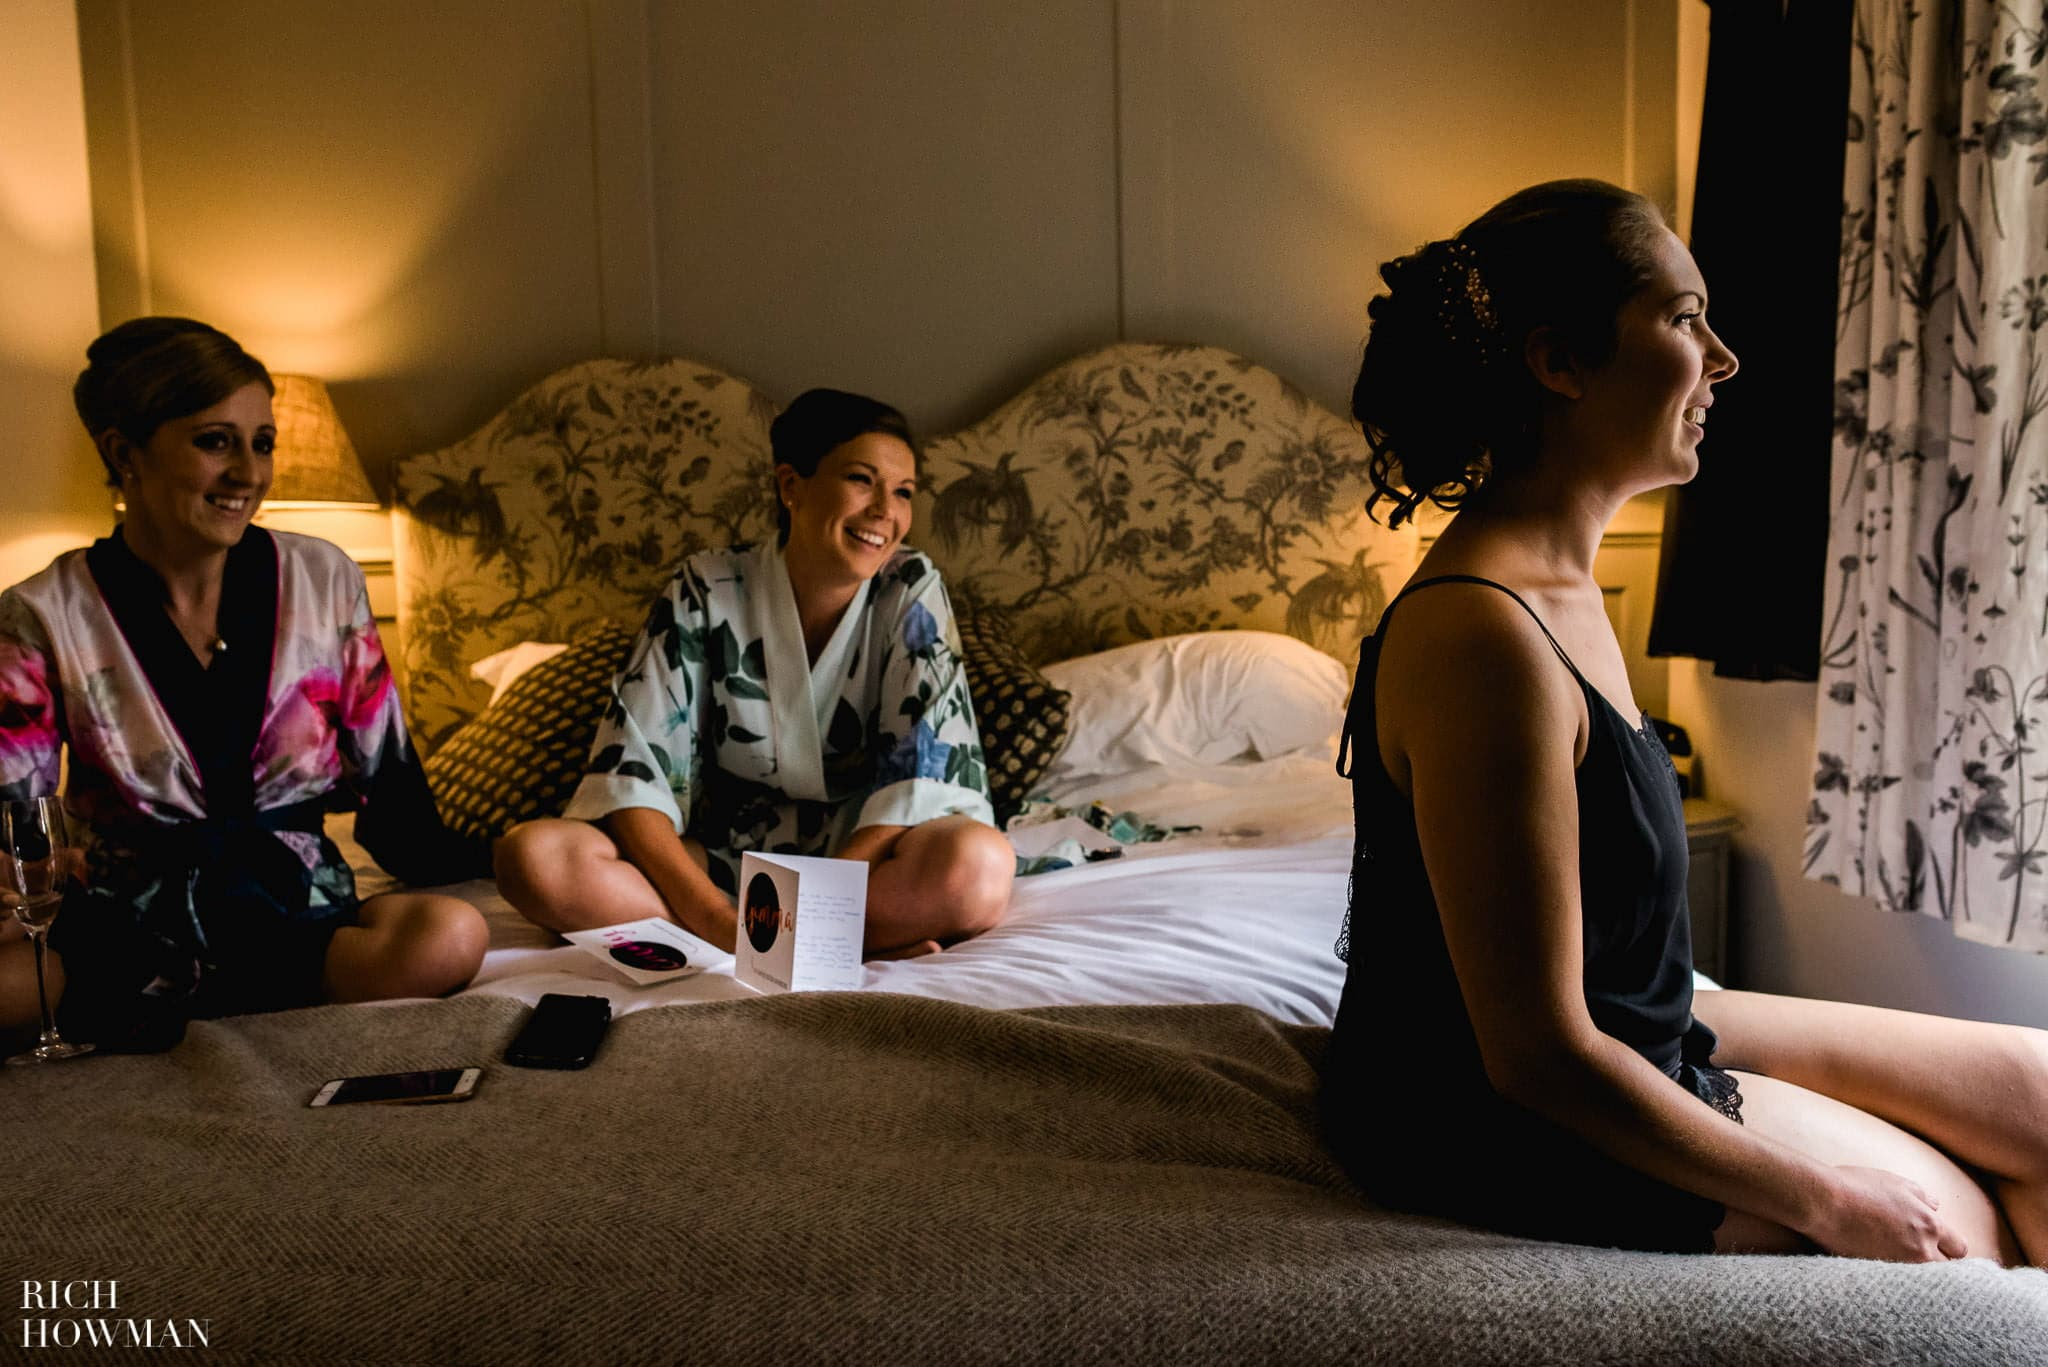 Bridesmaids sitting on a bed and sharing laughter with the bride before her wedding at Kew Gardens in London